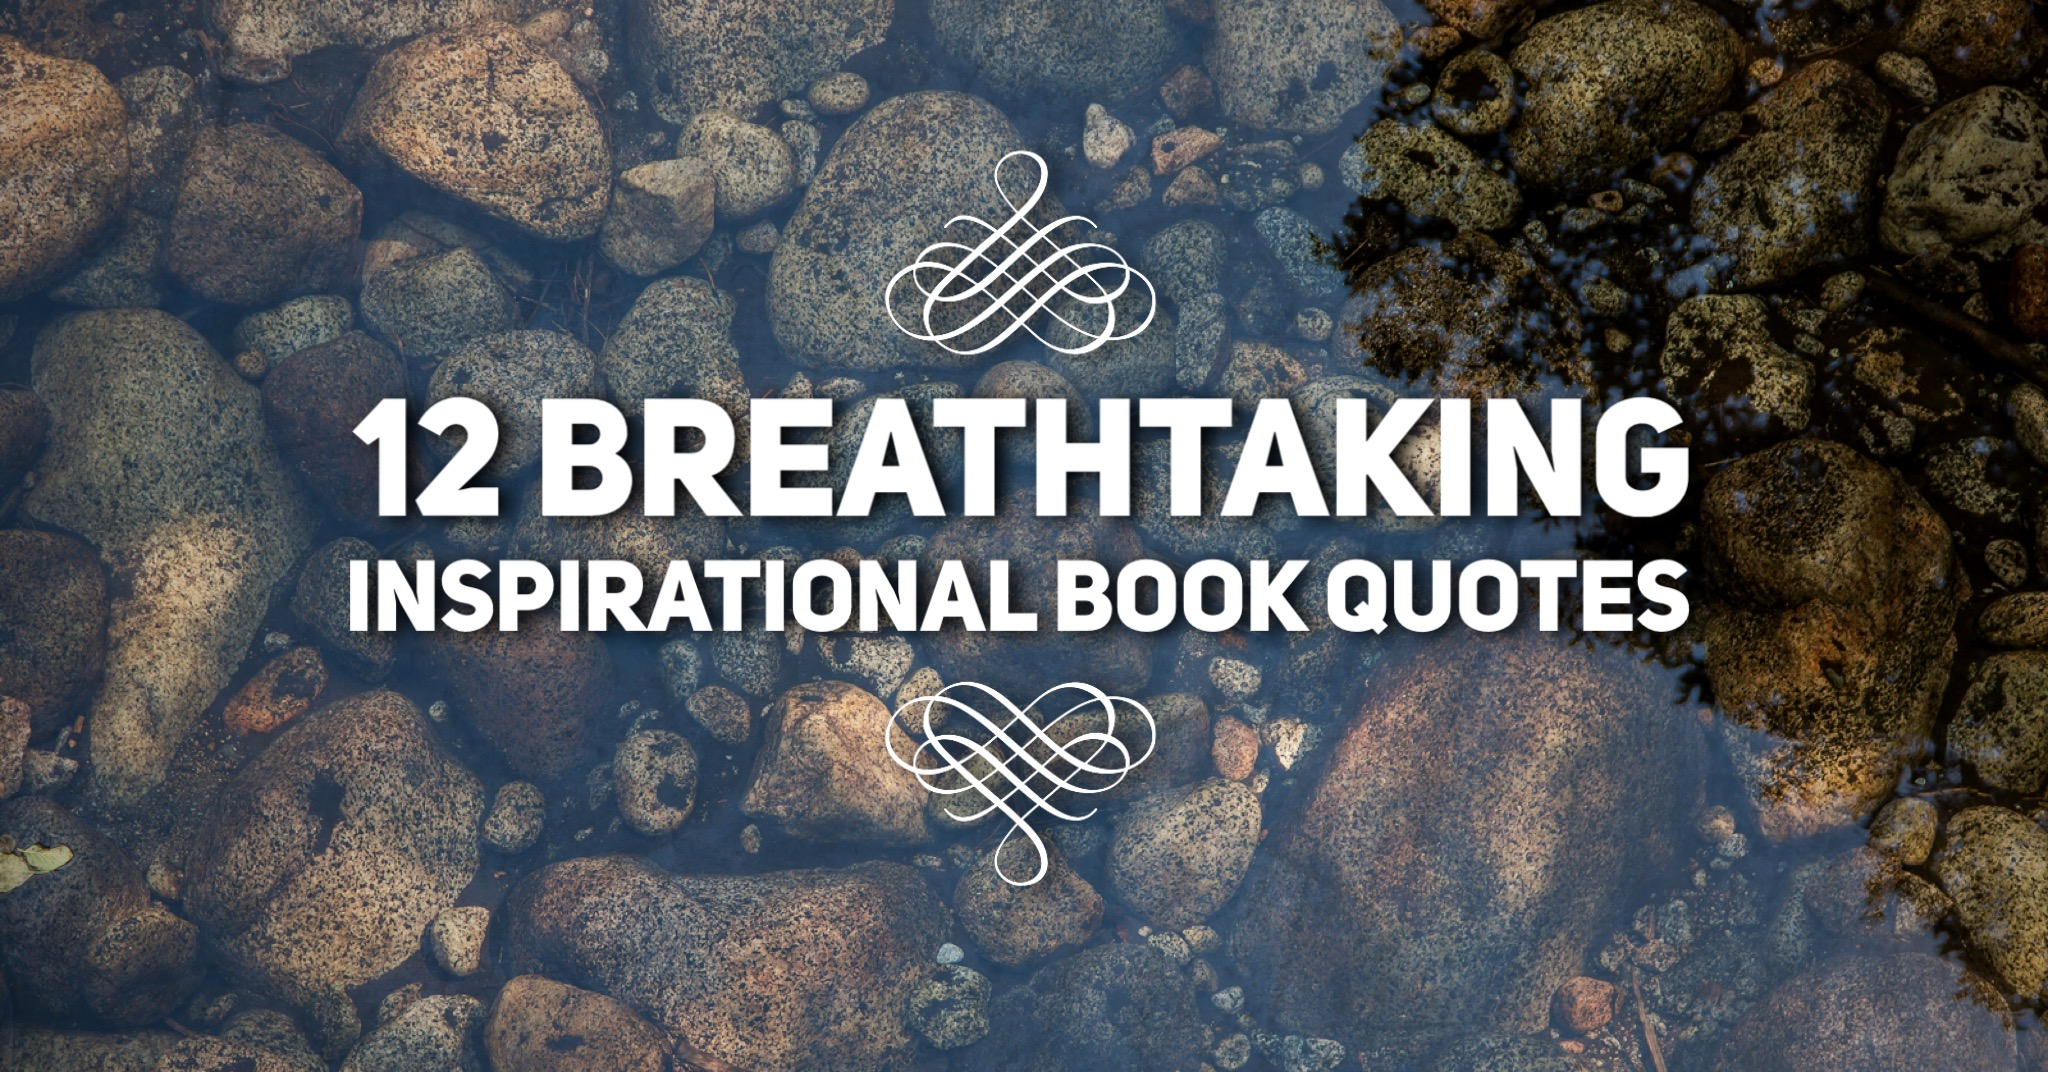 12 Breathtaking Inspirational Book Quotes Tl Branson